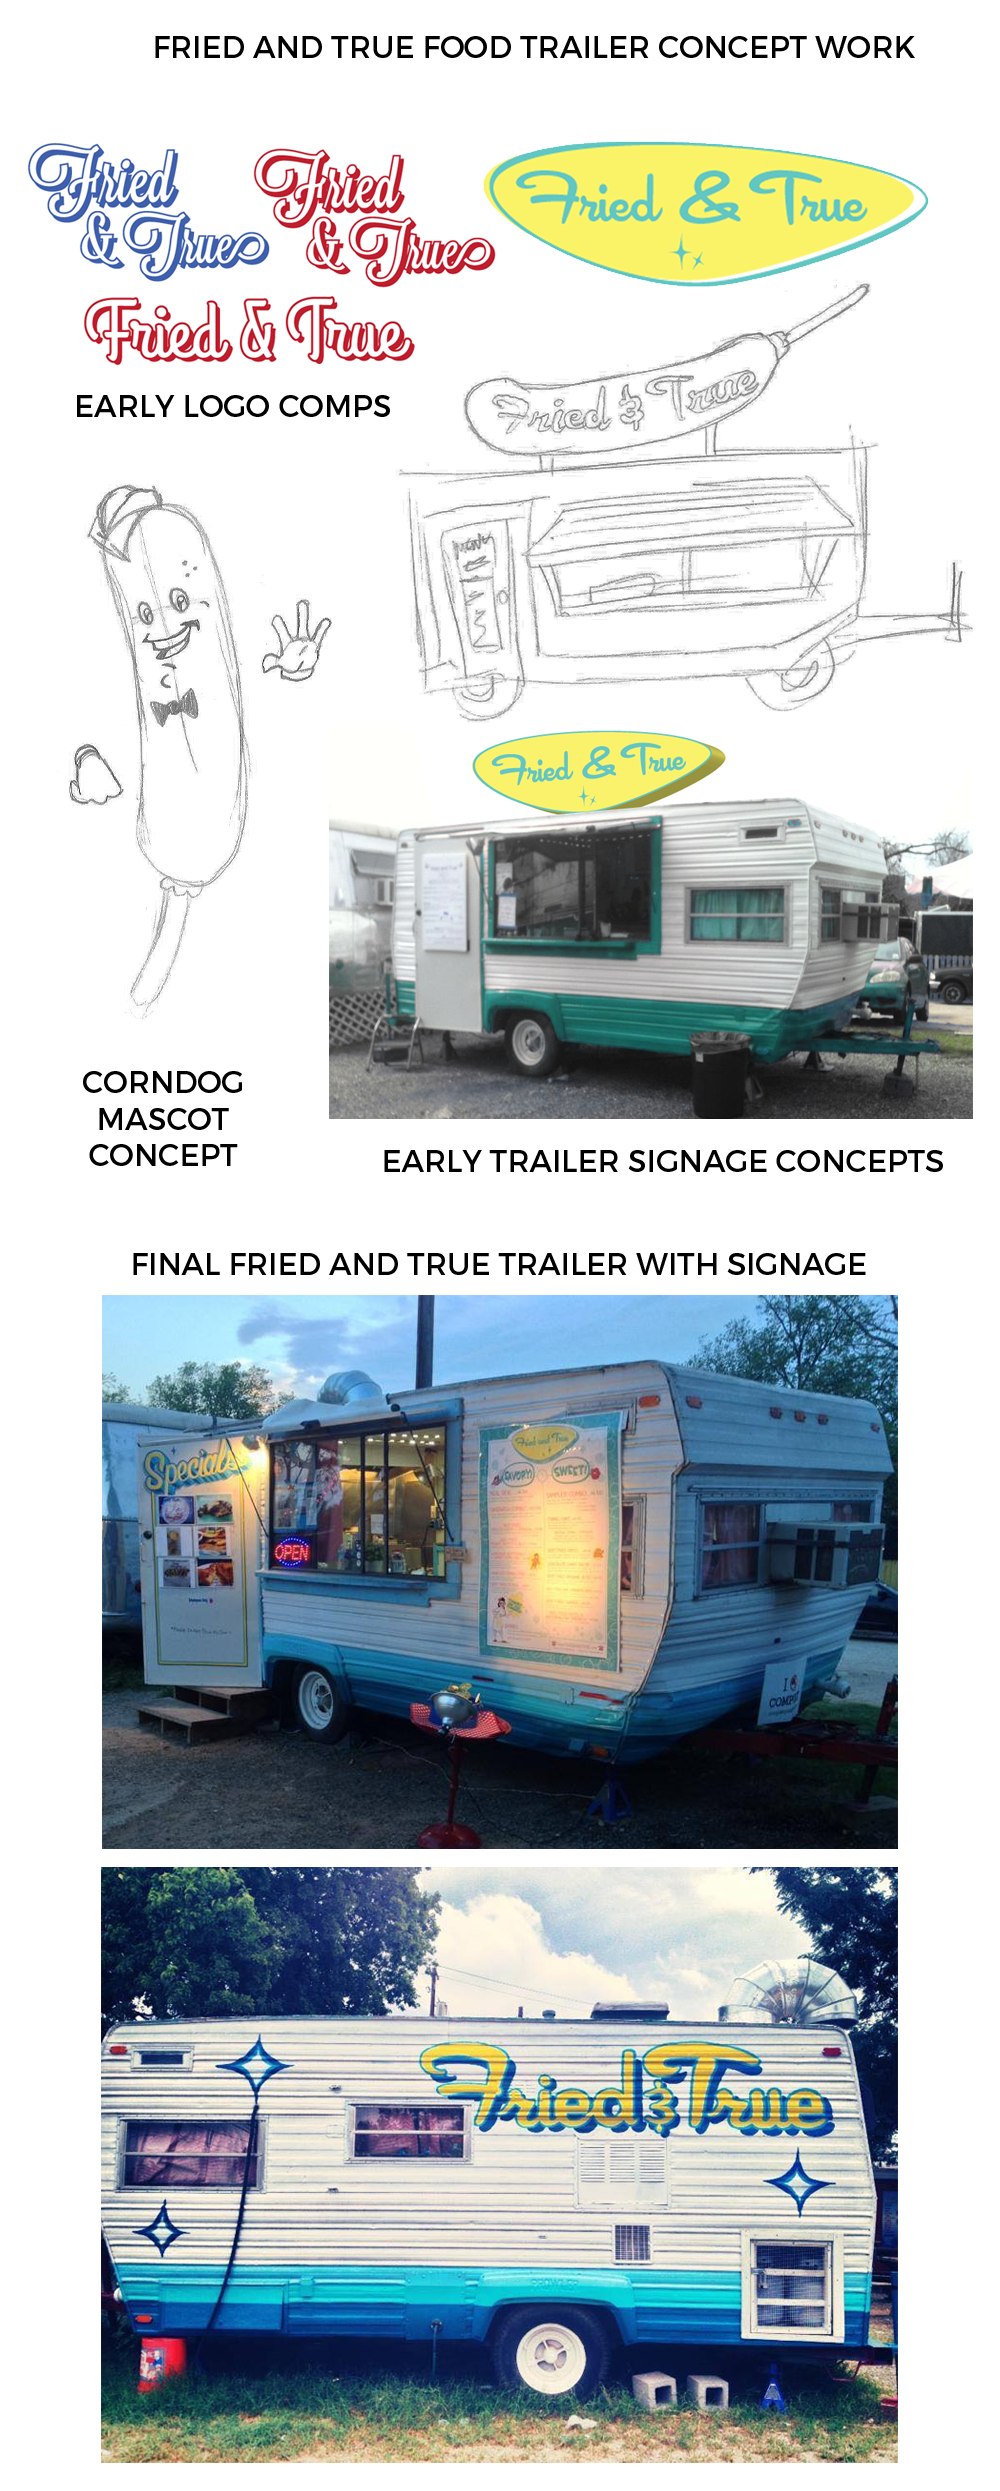 Fried And True - A few years ago, a good friend of mine decided to become an entrepreneur and open up a food trailer. Fried and True was an ode to old fashioned, fried comfort food. I was lucky enough to help them create their signage and branding and work with another artist to try and make their vision come true. Unfortunately the trailer was not stable enough to allow roof signage like we wanted, but the trailer was nevertheless a success.